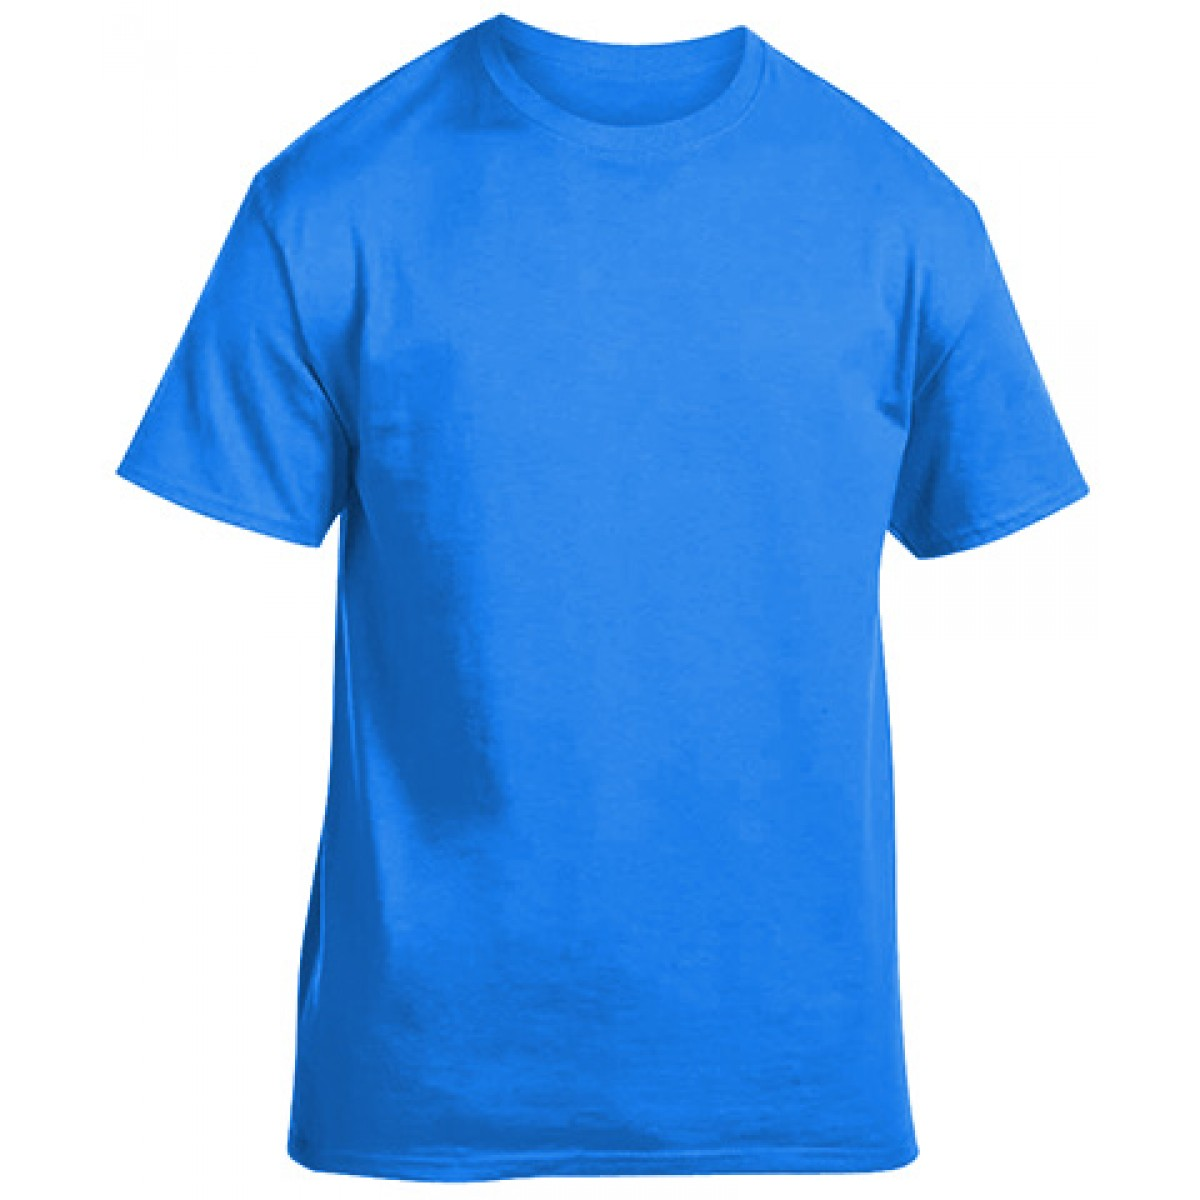 Soft 100% Cotton T-Shirt-Neon Blue-3XL